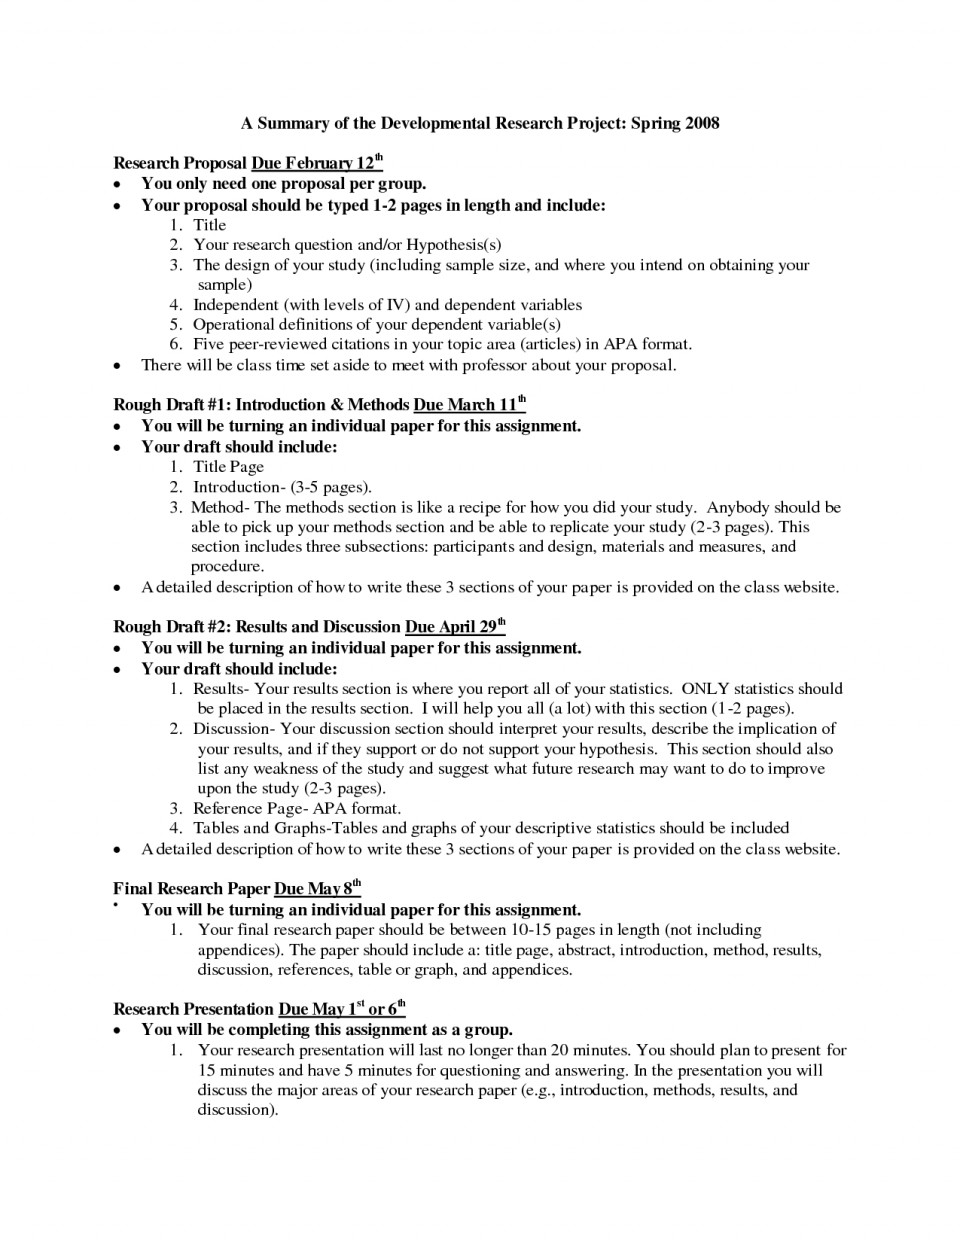 009 Good Topics For Researchs Psychology Undergraduate Resume Unique Sample Of Awesome Research Papers Topic College English Paper Interesting World History In 960